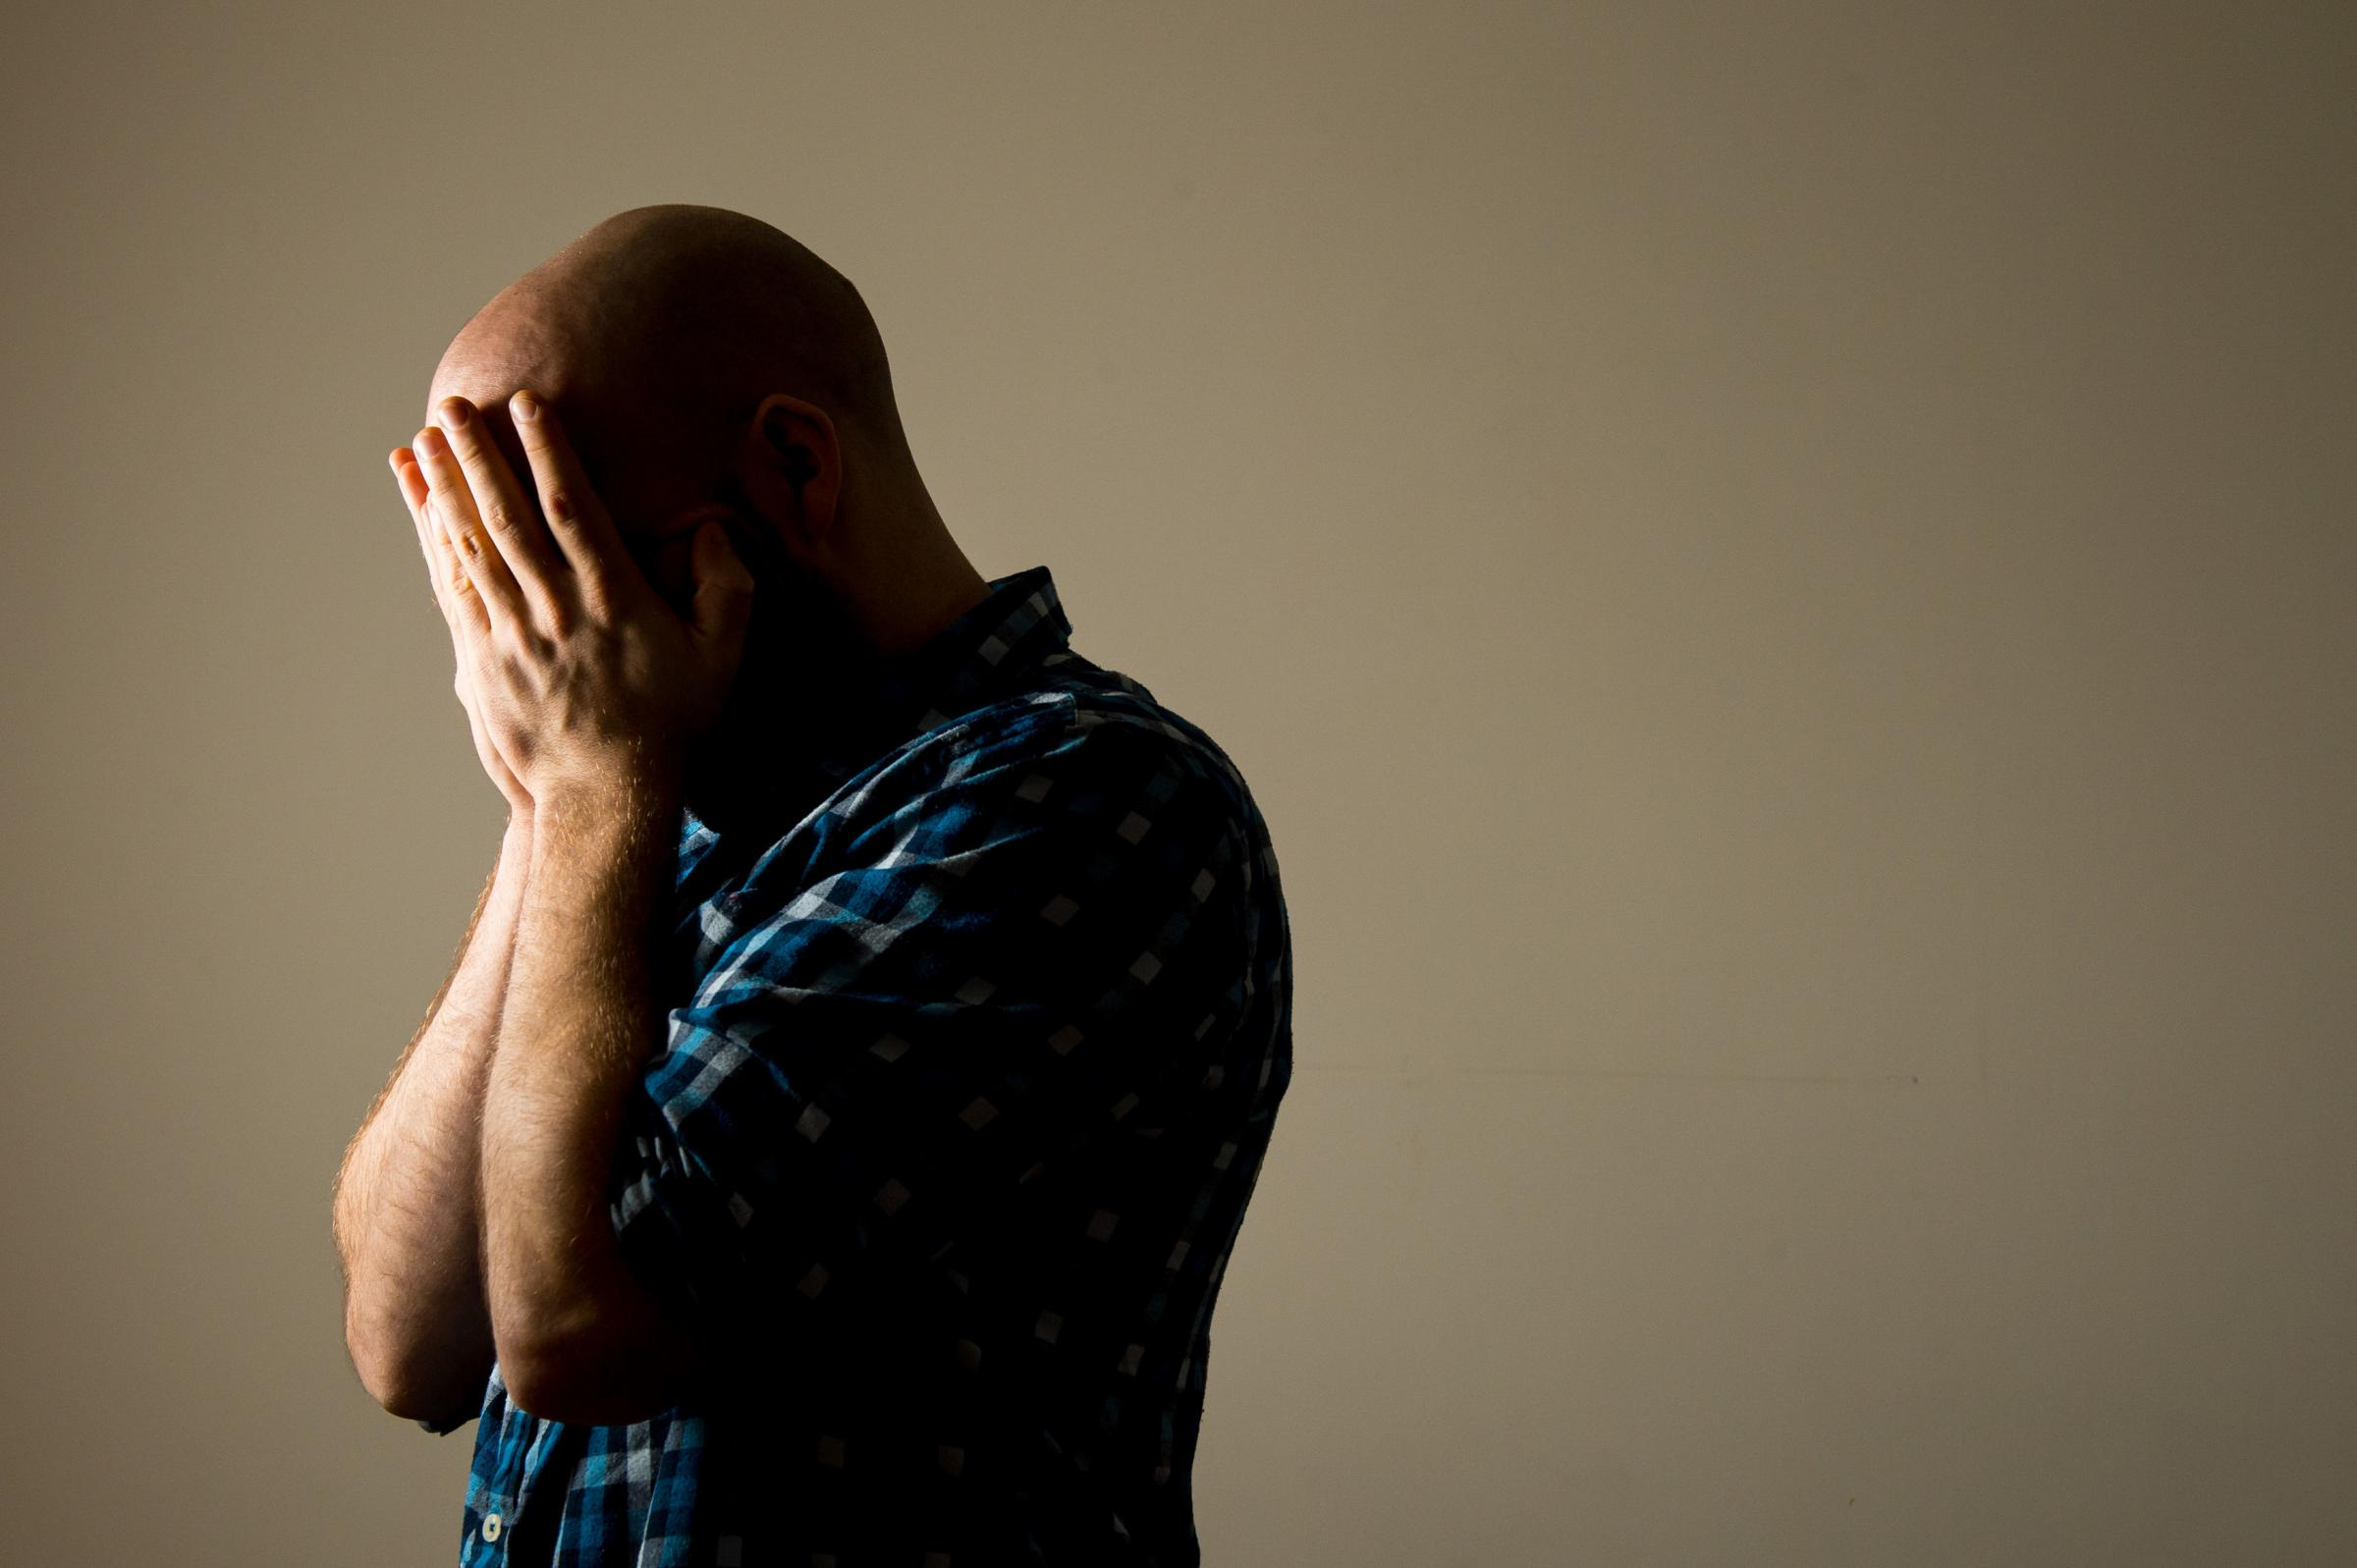 Male suicide figures show true scale of 'silent epidemic'